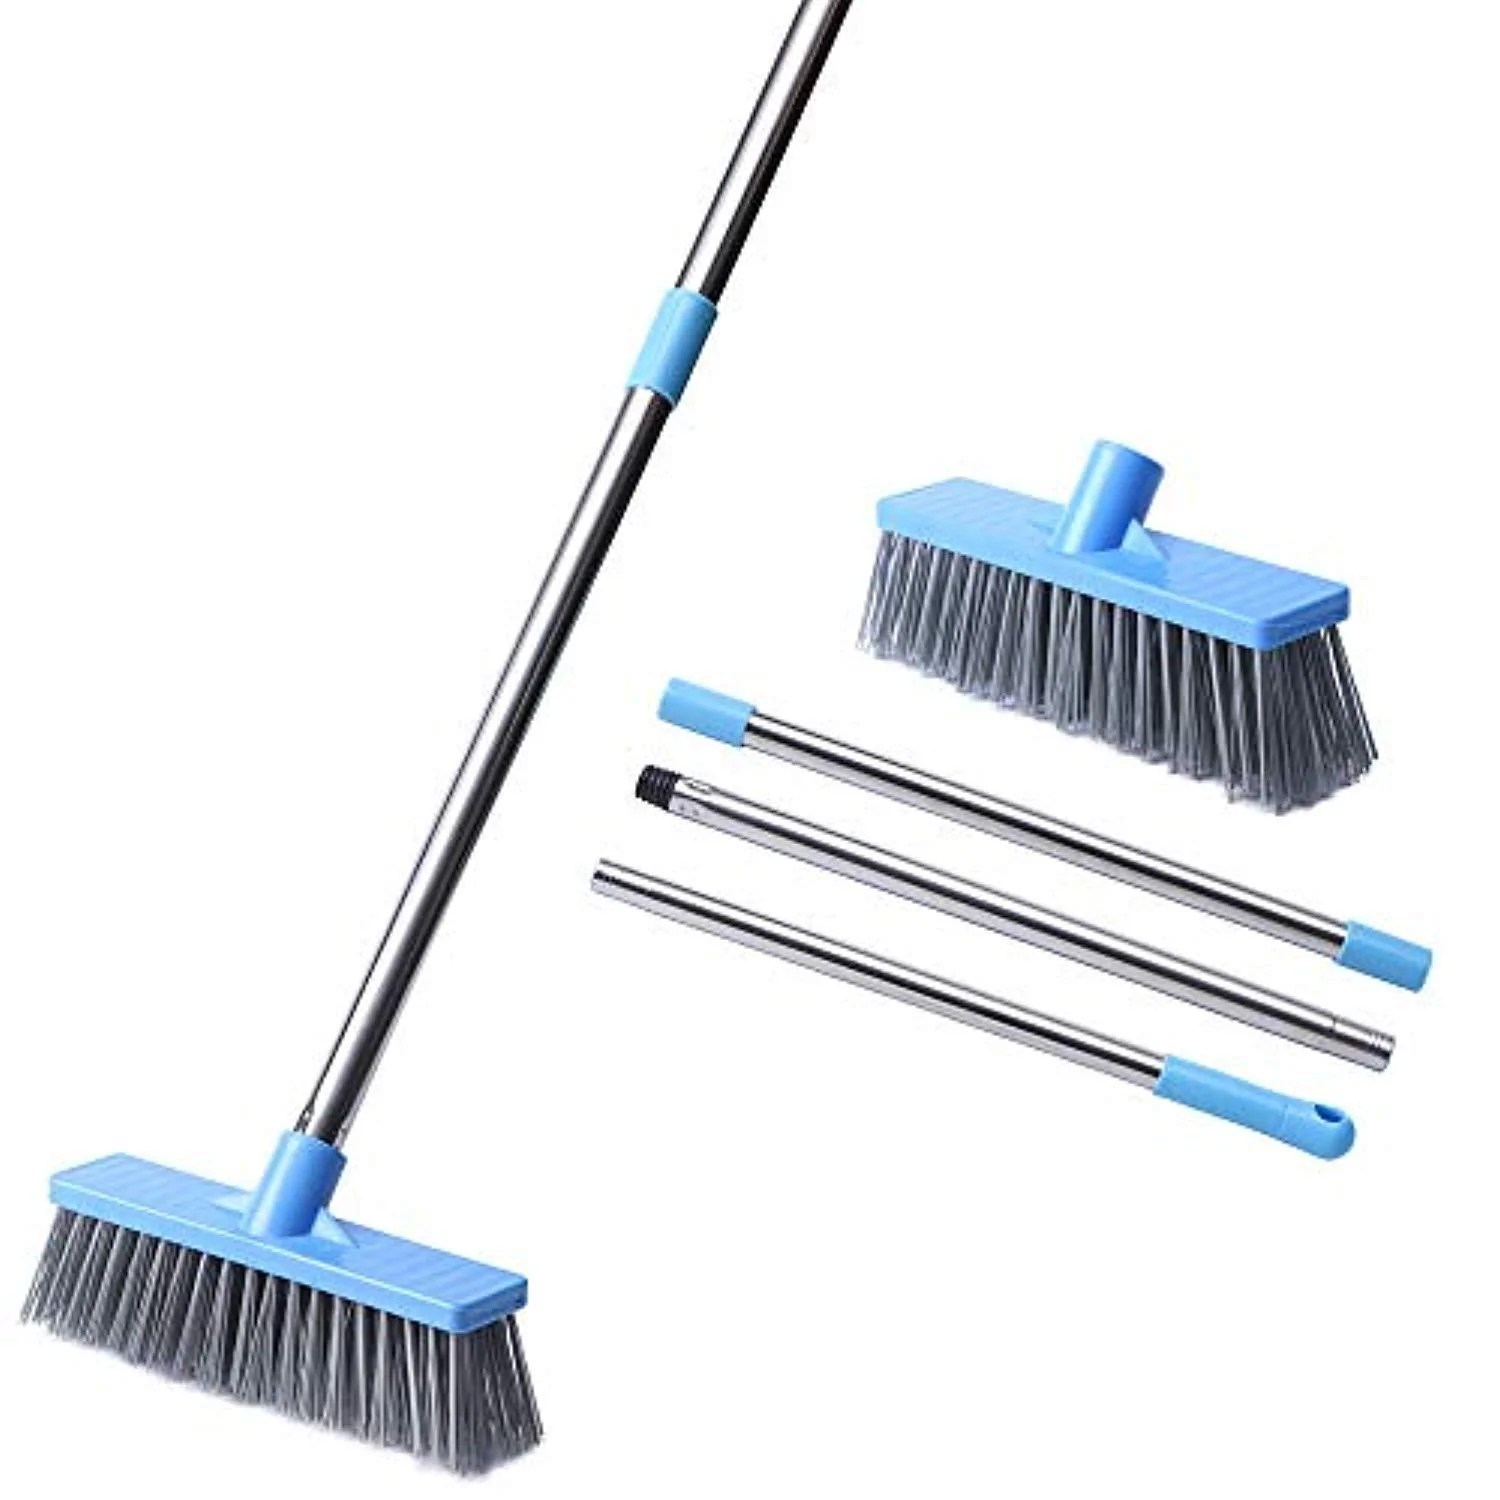 huyijjh floor scrub brush with long handle 52 8 stiff bristle tub and tile grout brush scrubber with adjustable stainless steel handle for cleaning